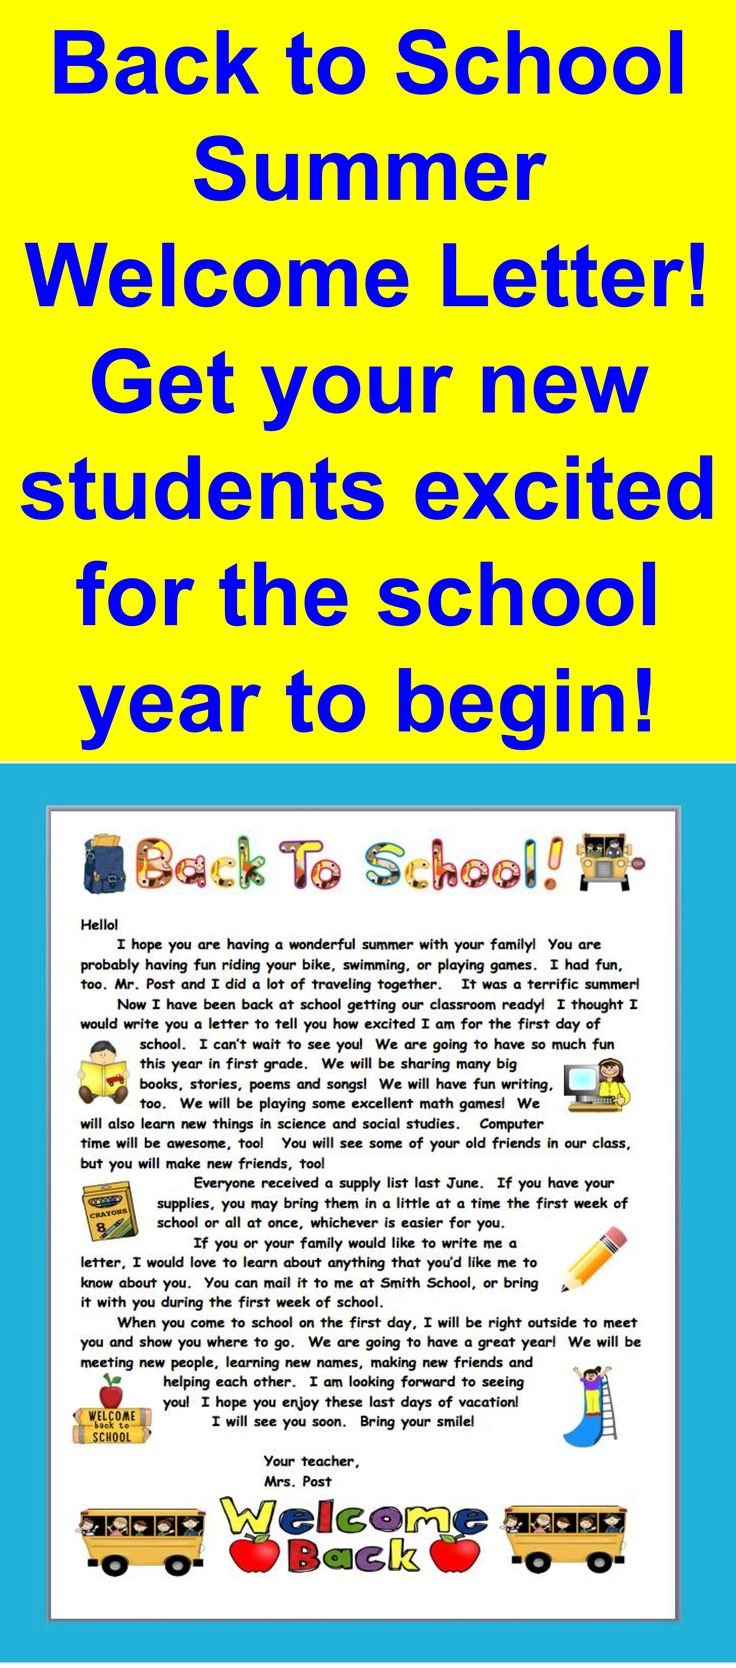 $ Summer Welcome Letter - This letter can be sent late in the summer to welcome your students to your classroom. It has graphics and text that can be altered, edited and re-sized to make it your own.